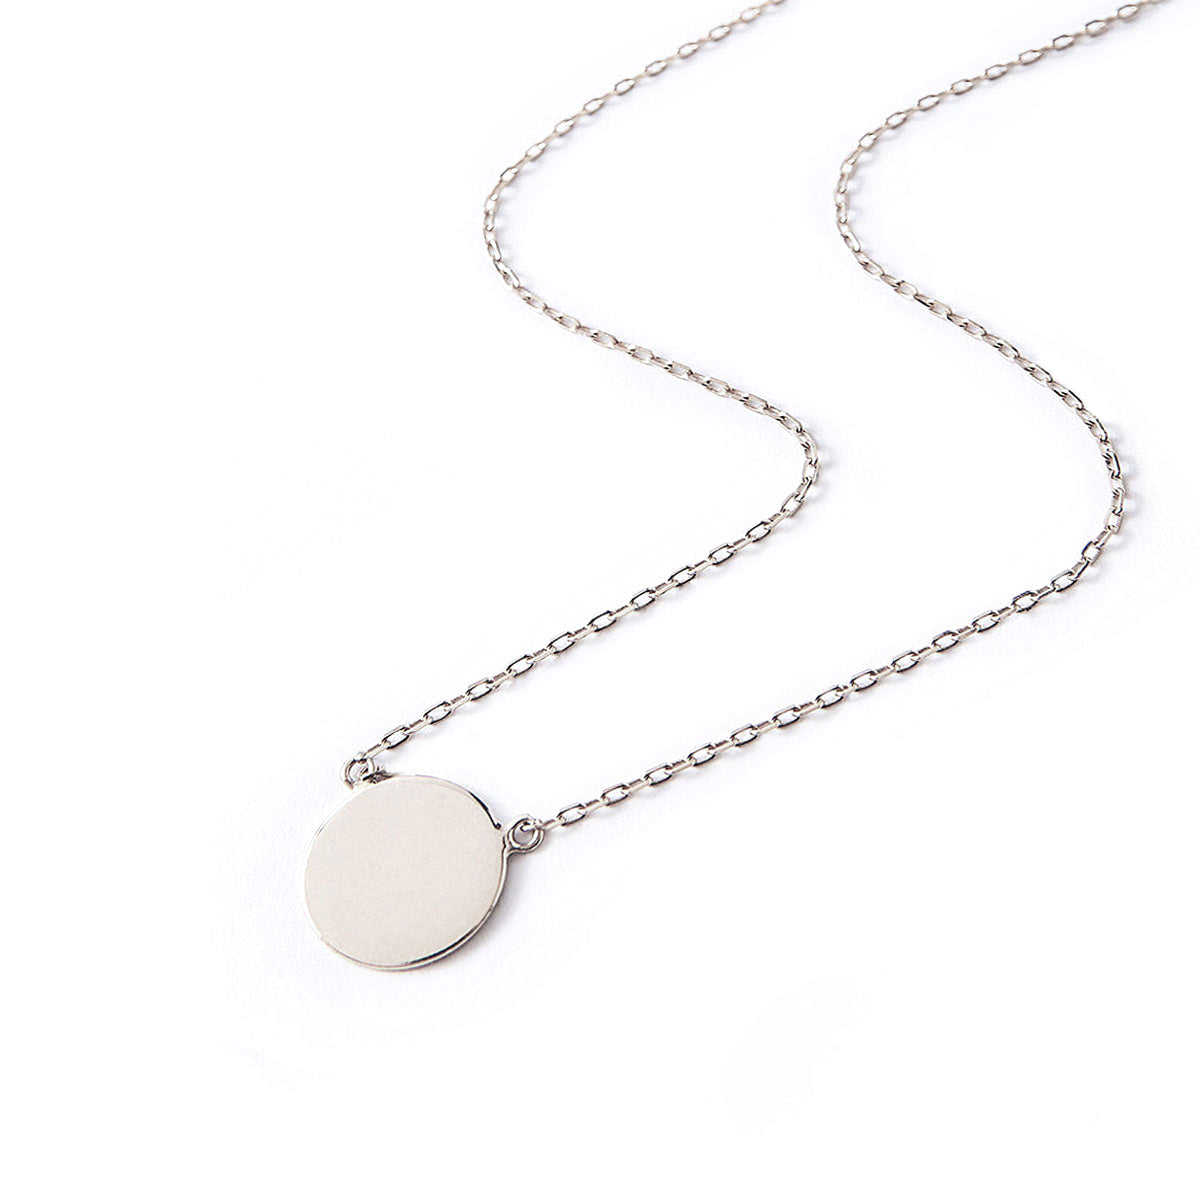 Small Sterling Silver Circle Disc Pendant Necklace